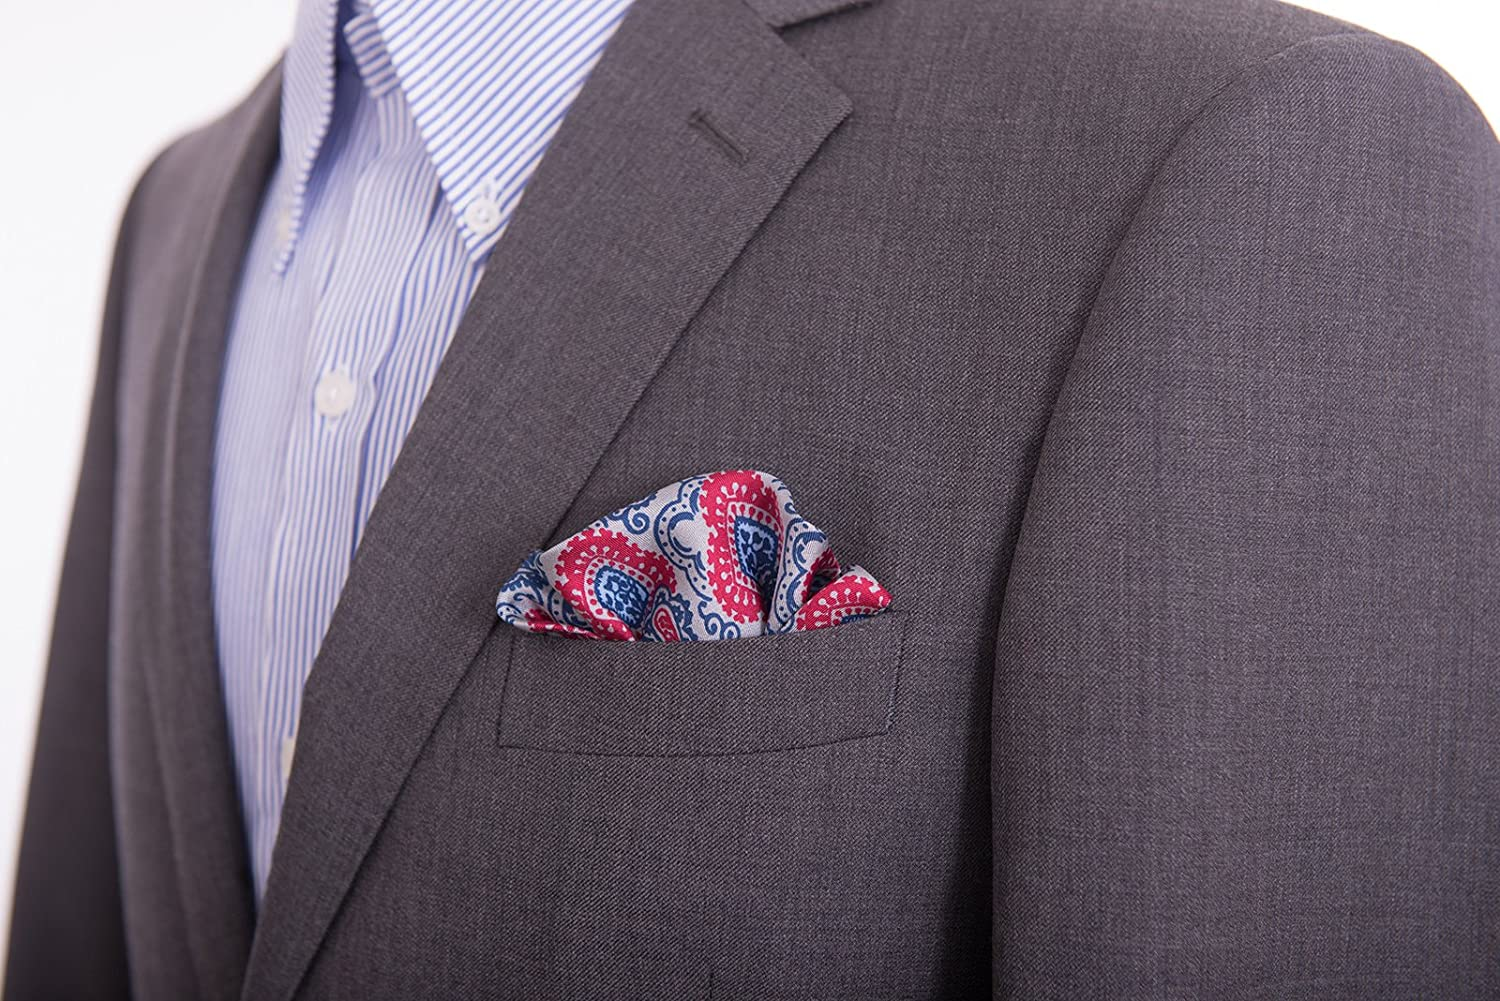 Kiton Gray With Blue /& Red Paisley Silk Pocket Square Handmade In Italy